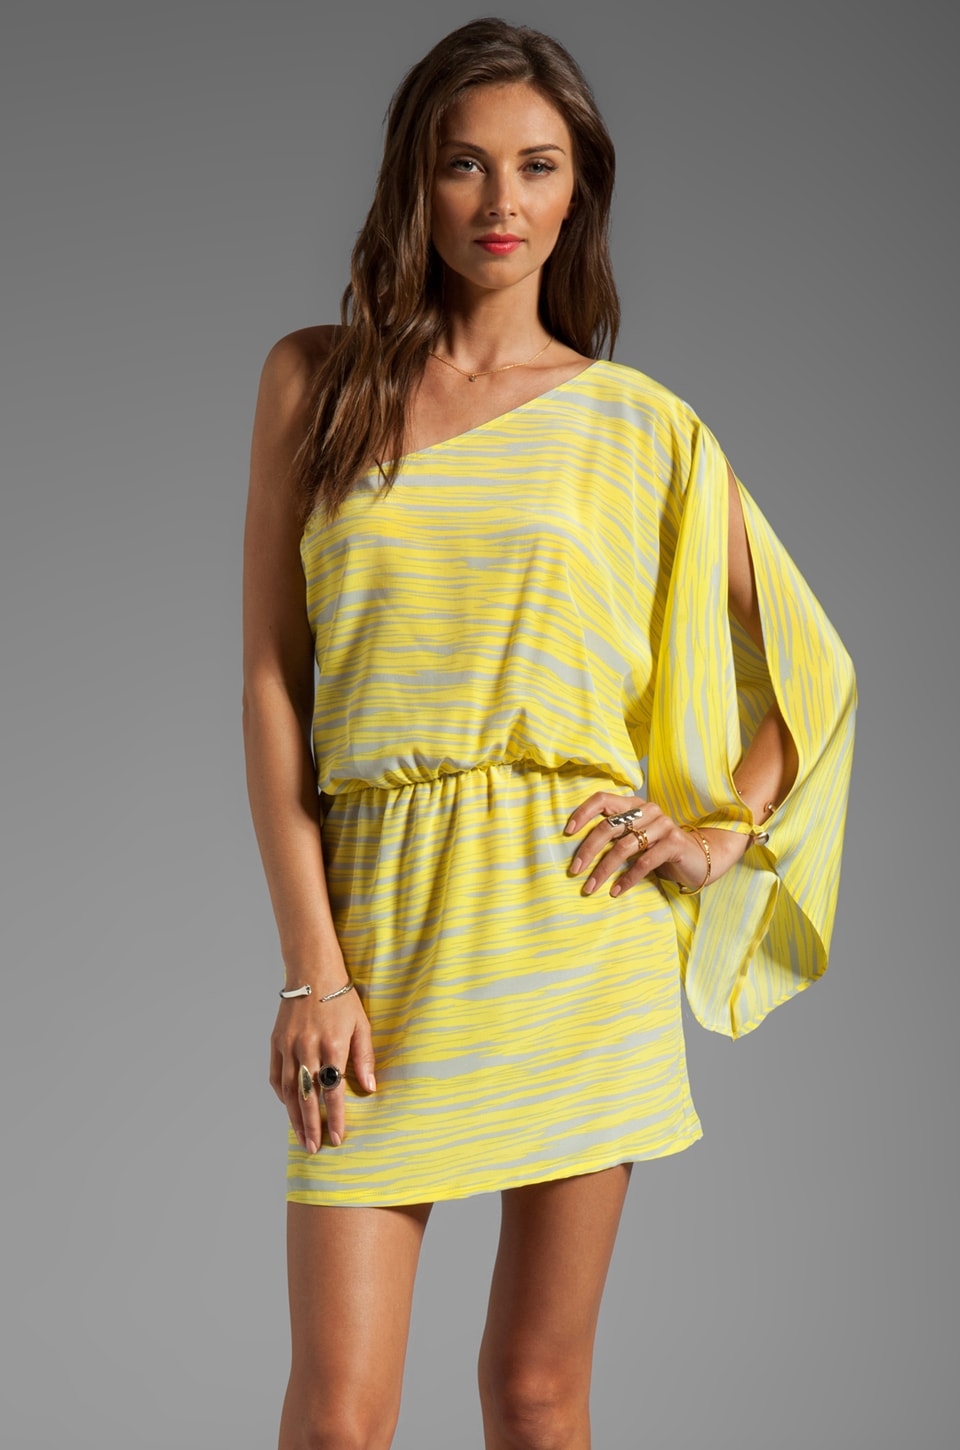 Karina Grimaldi Kim Print One Shoulder Mini in Yellow Zebra Print